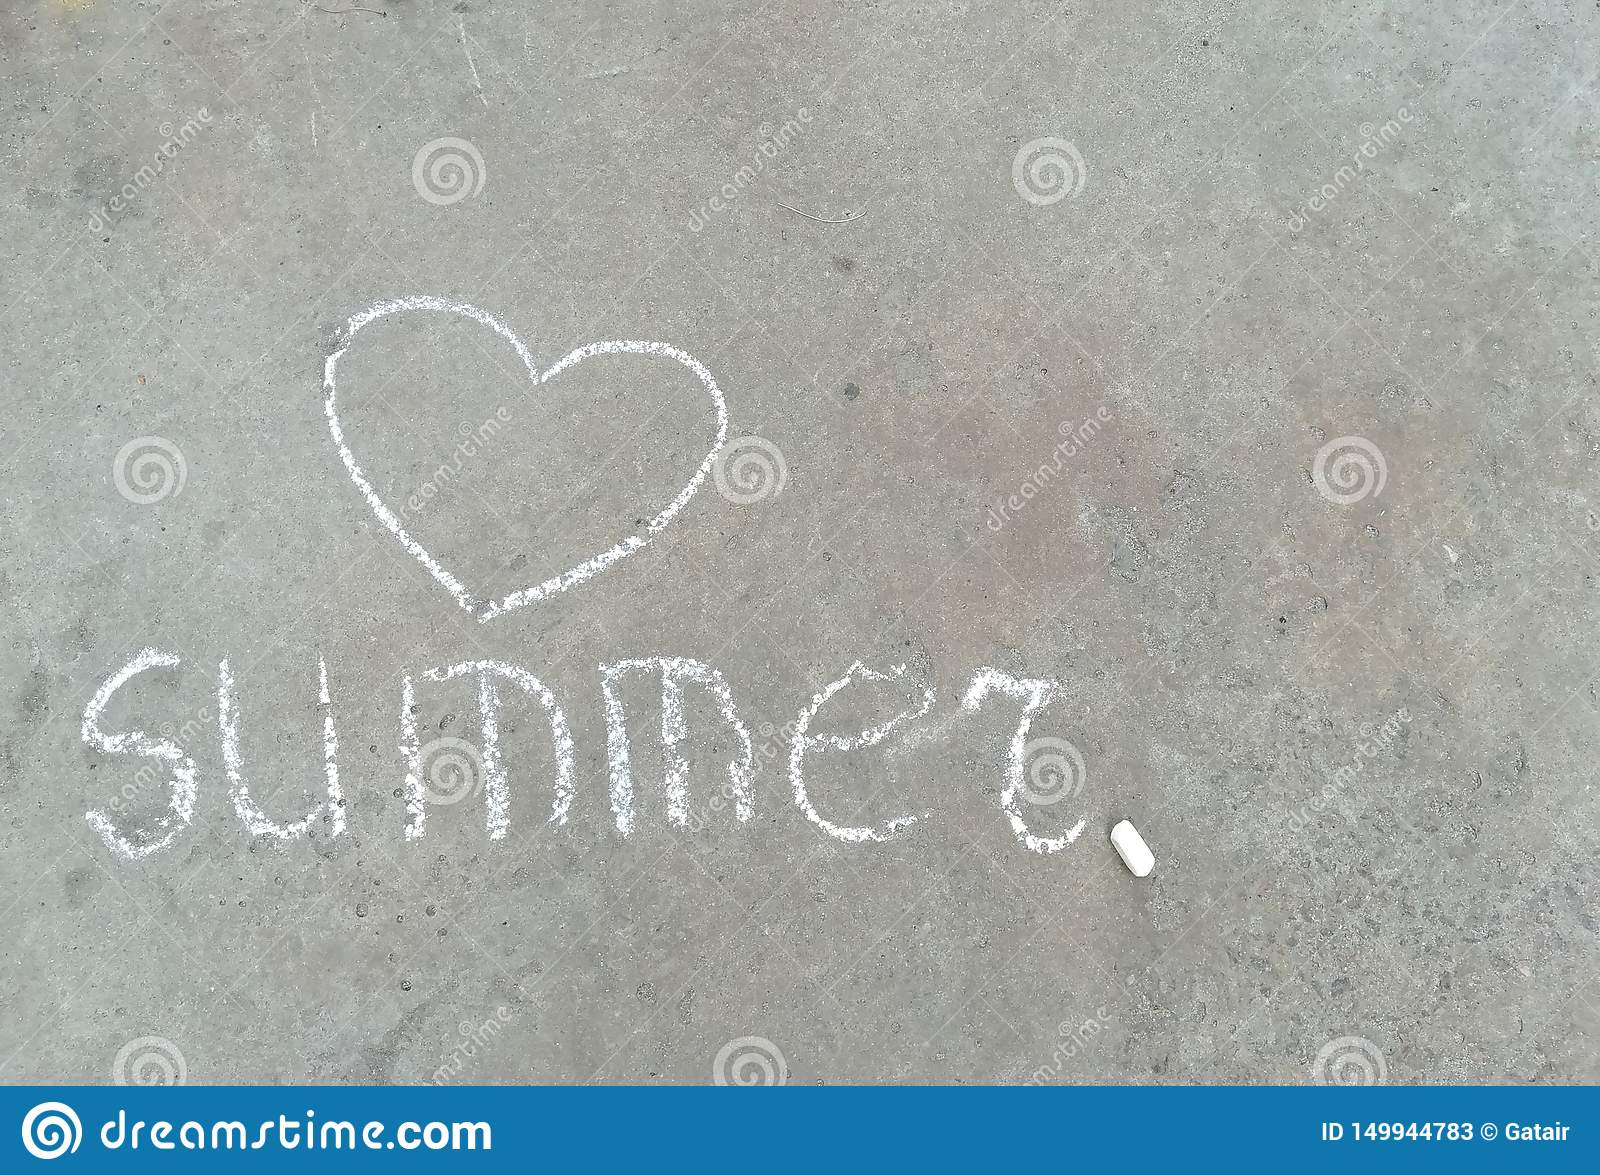 Summer word and heart - white chalk hand drawing on black asphalt